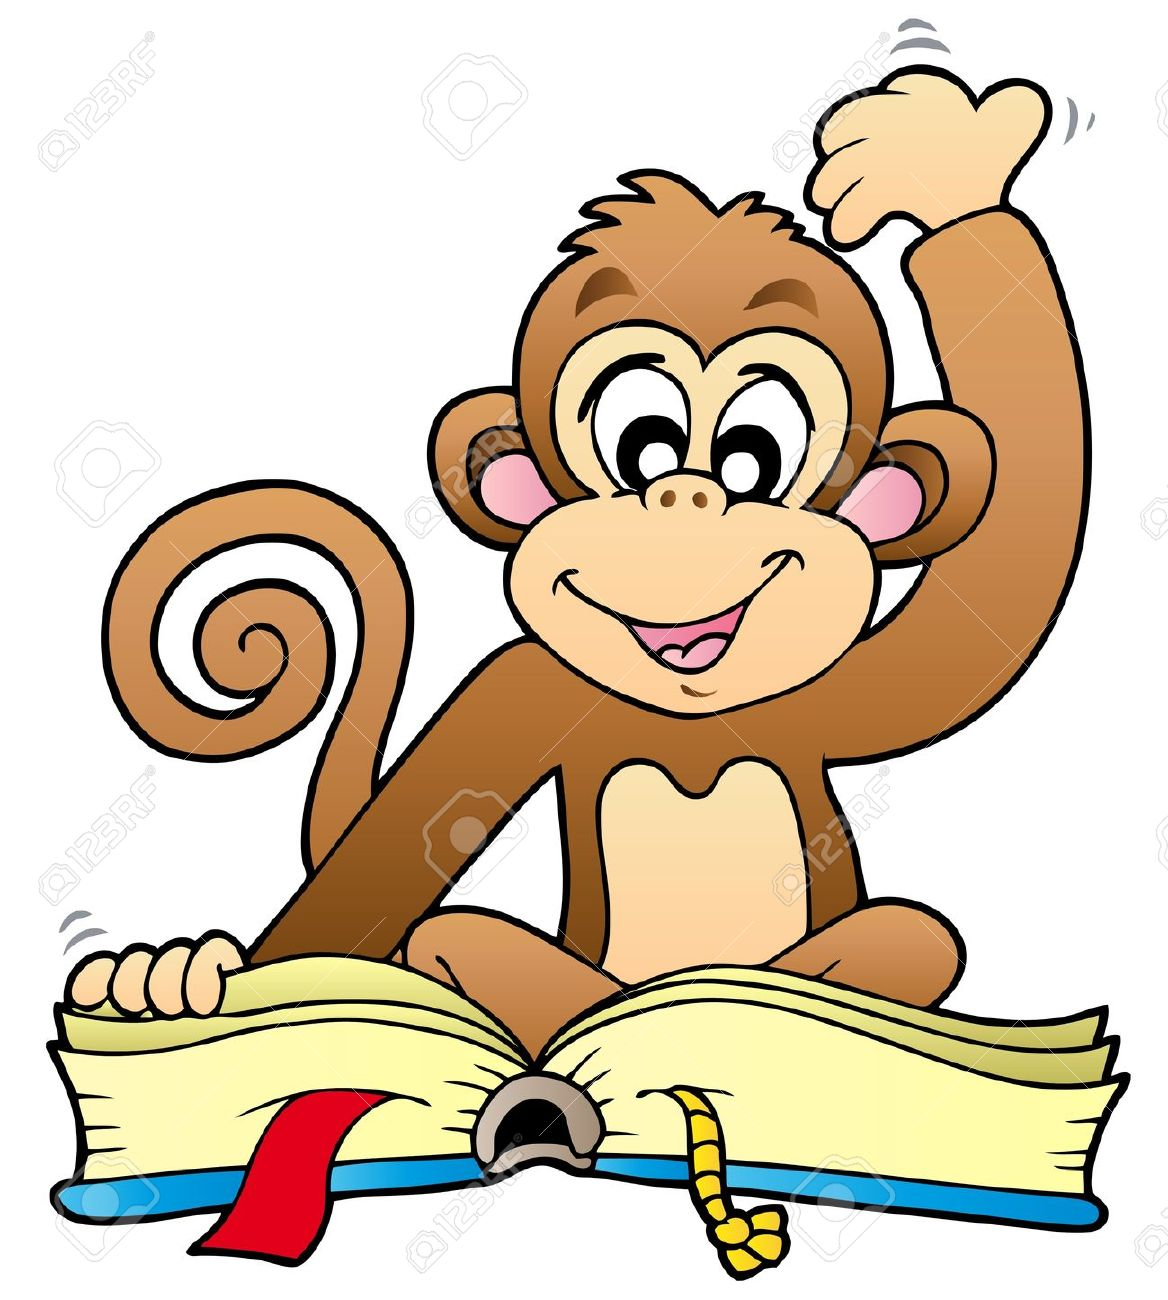 1168x1300 Homework clipart monkey